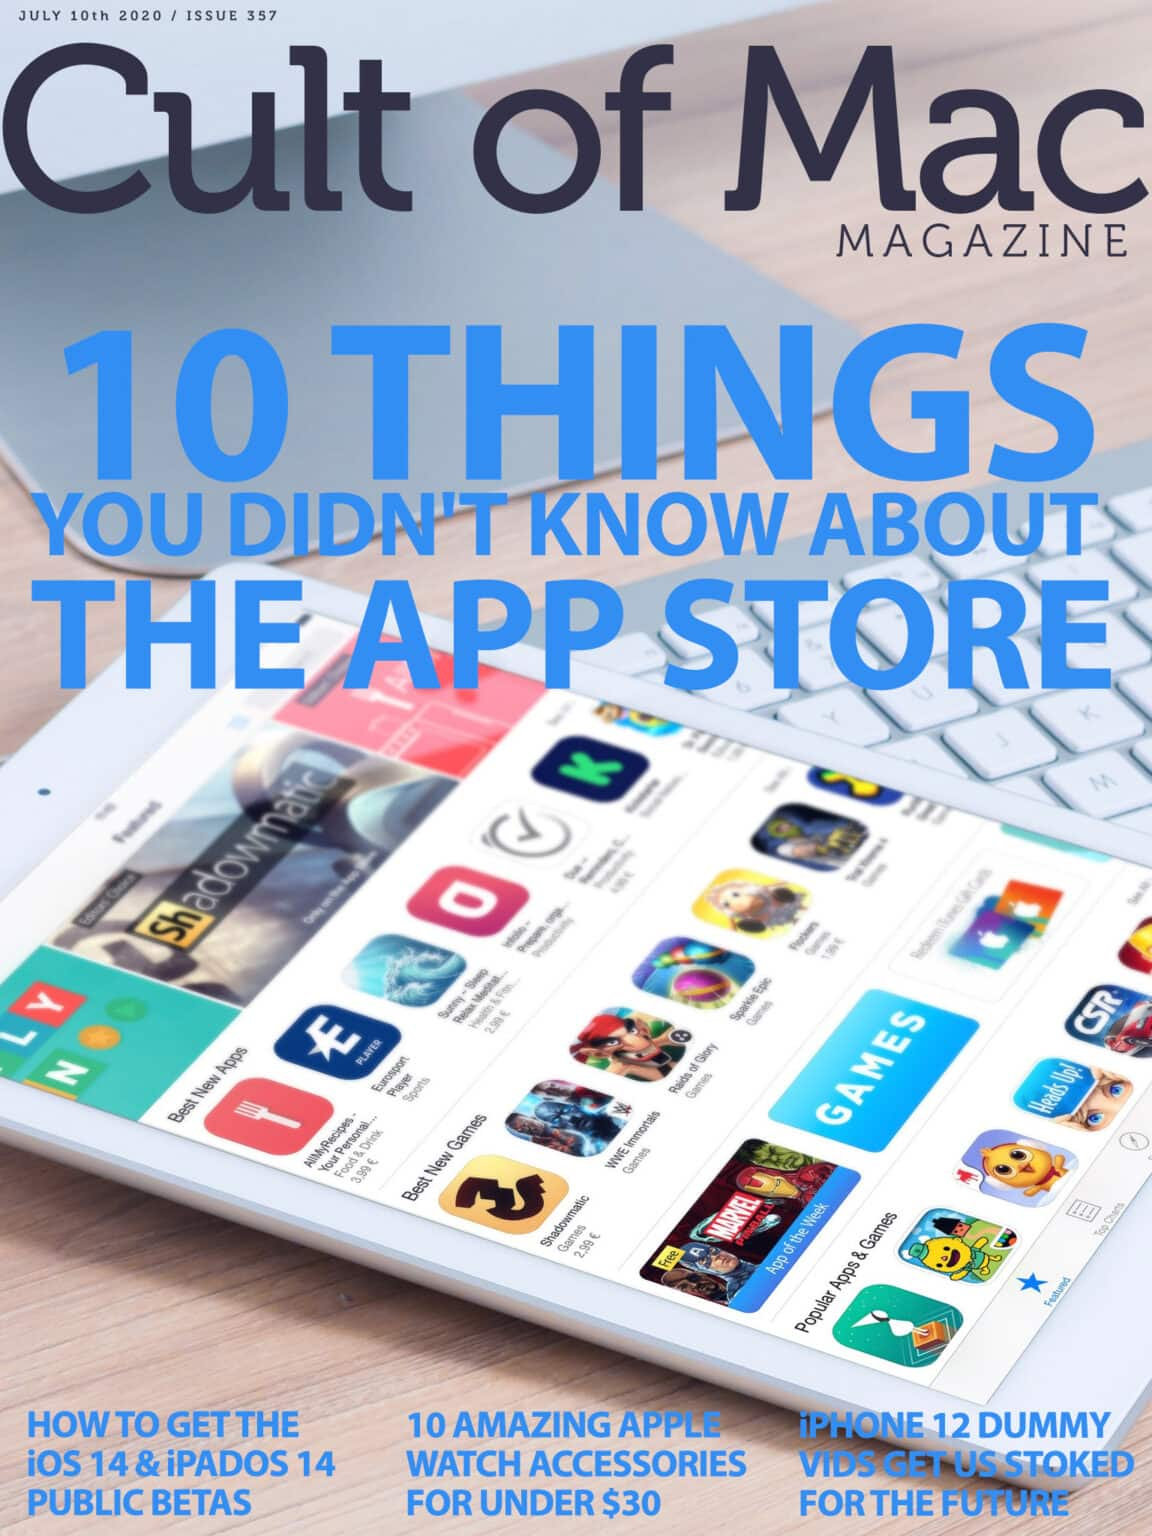 Time to bone up on your App Store trivia.